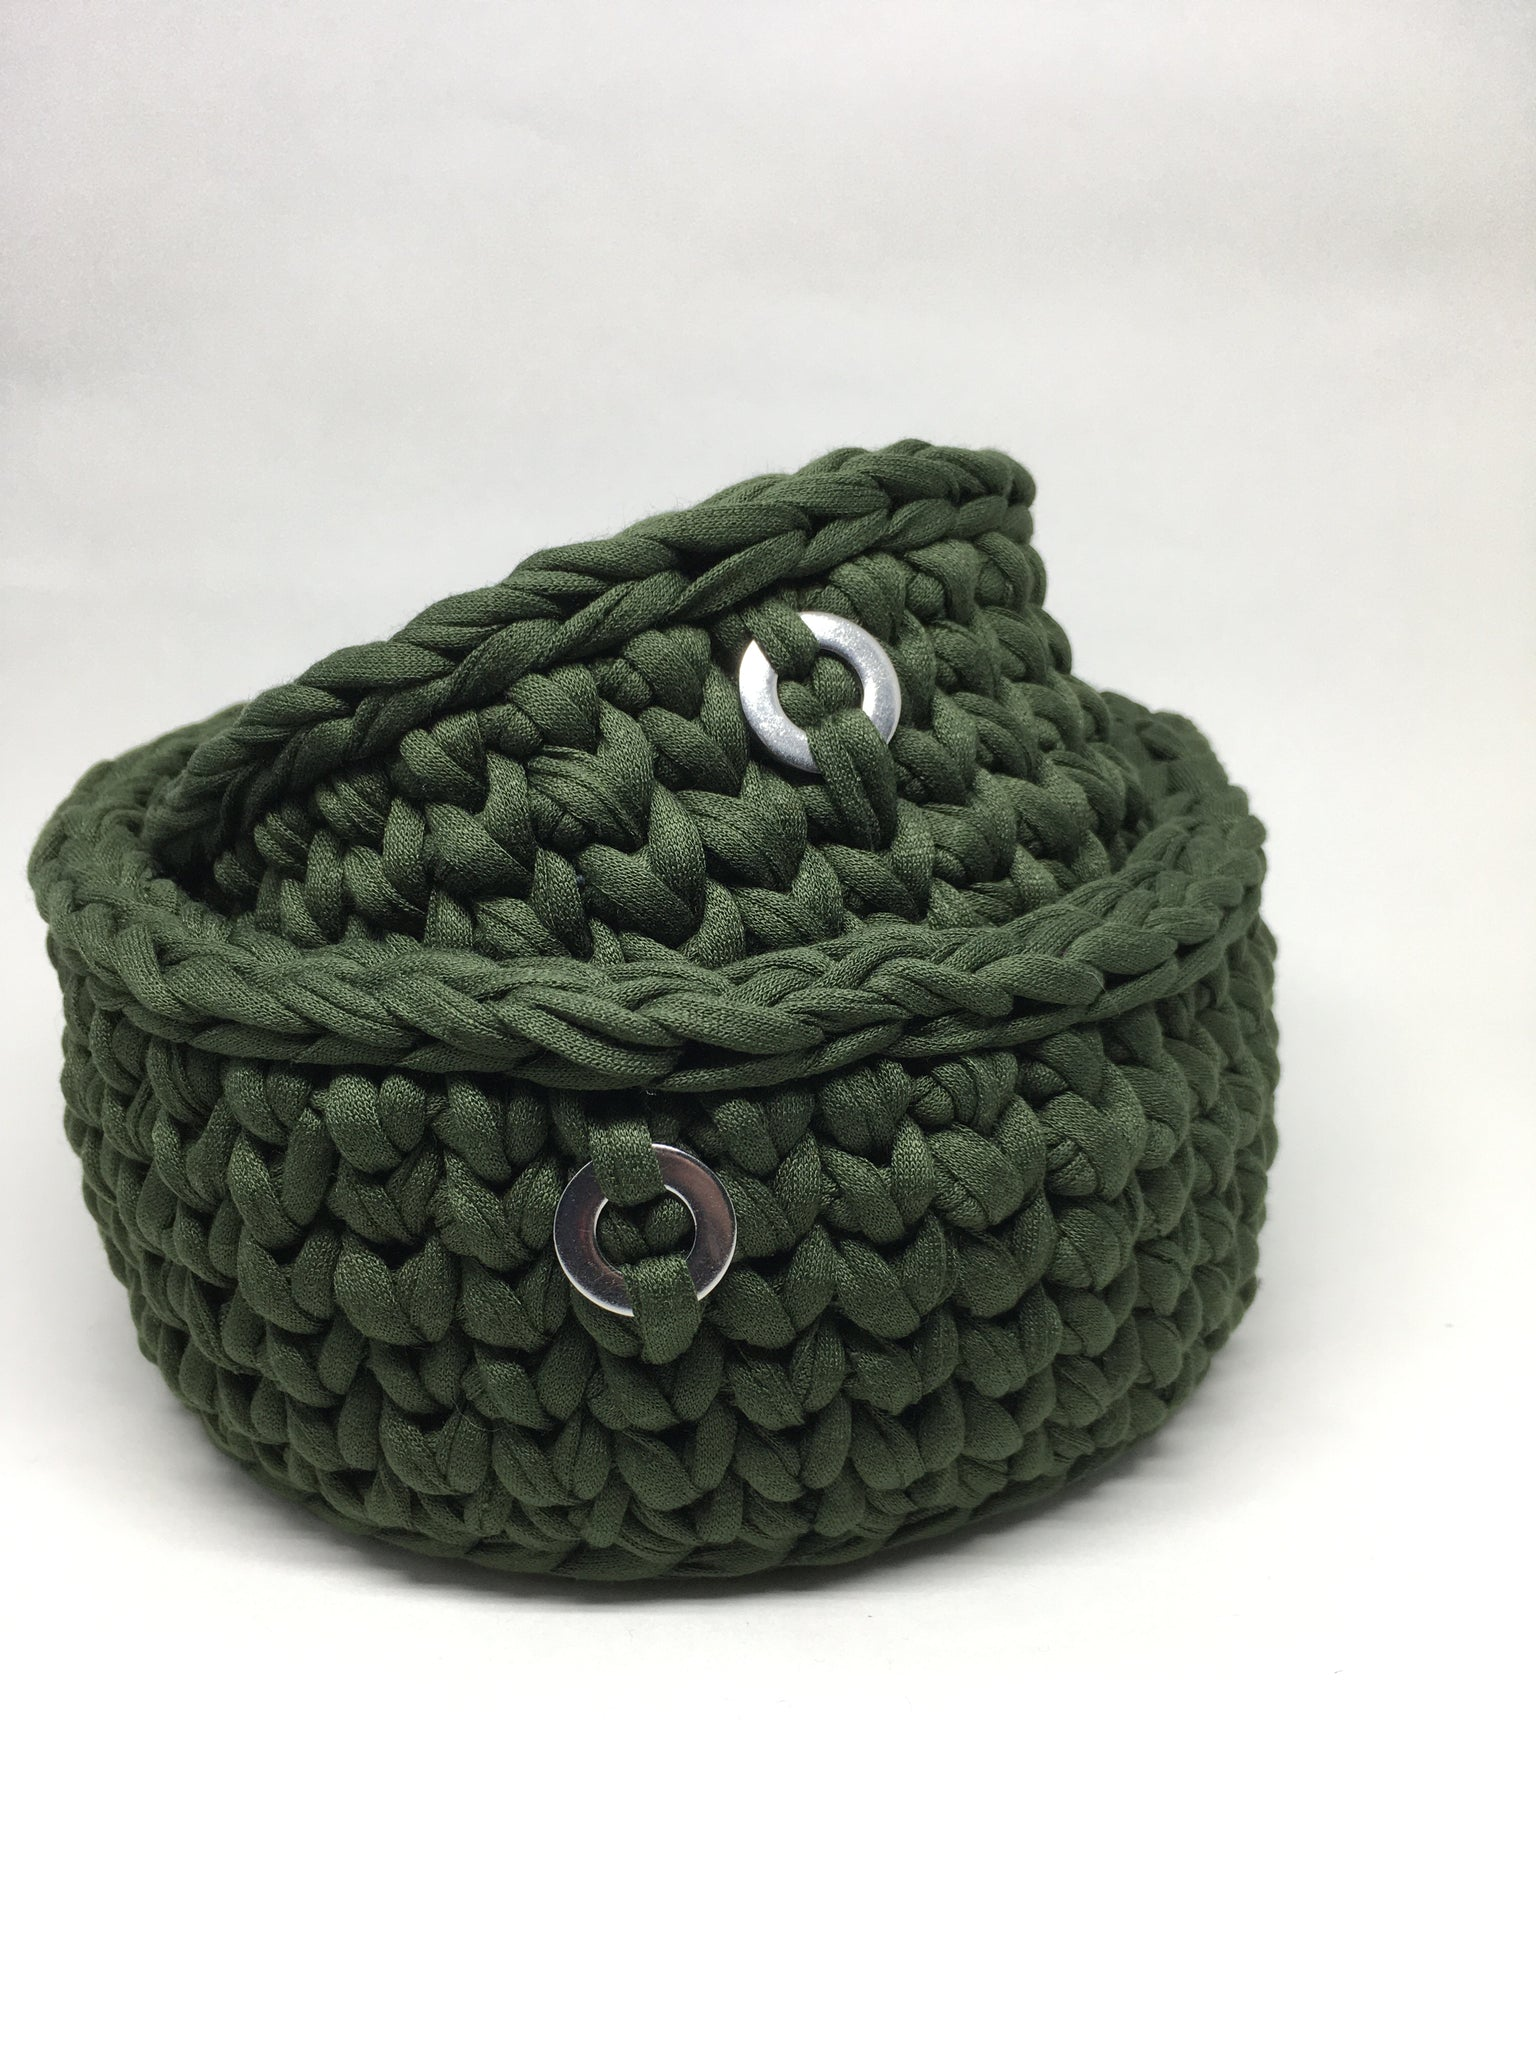 Crochet Basket, Dark Green Set